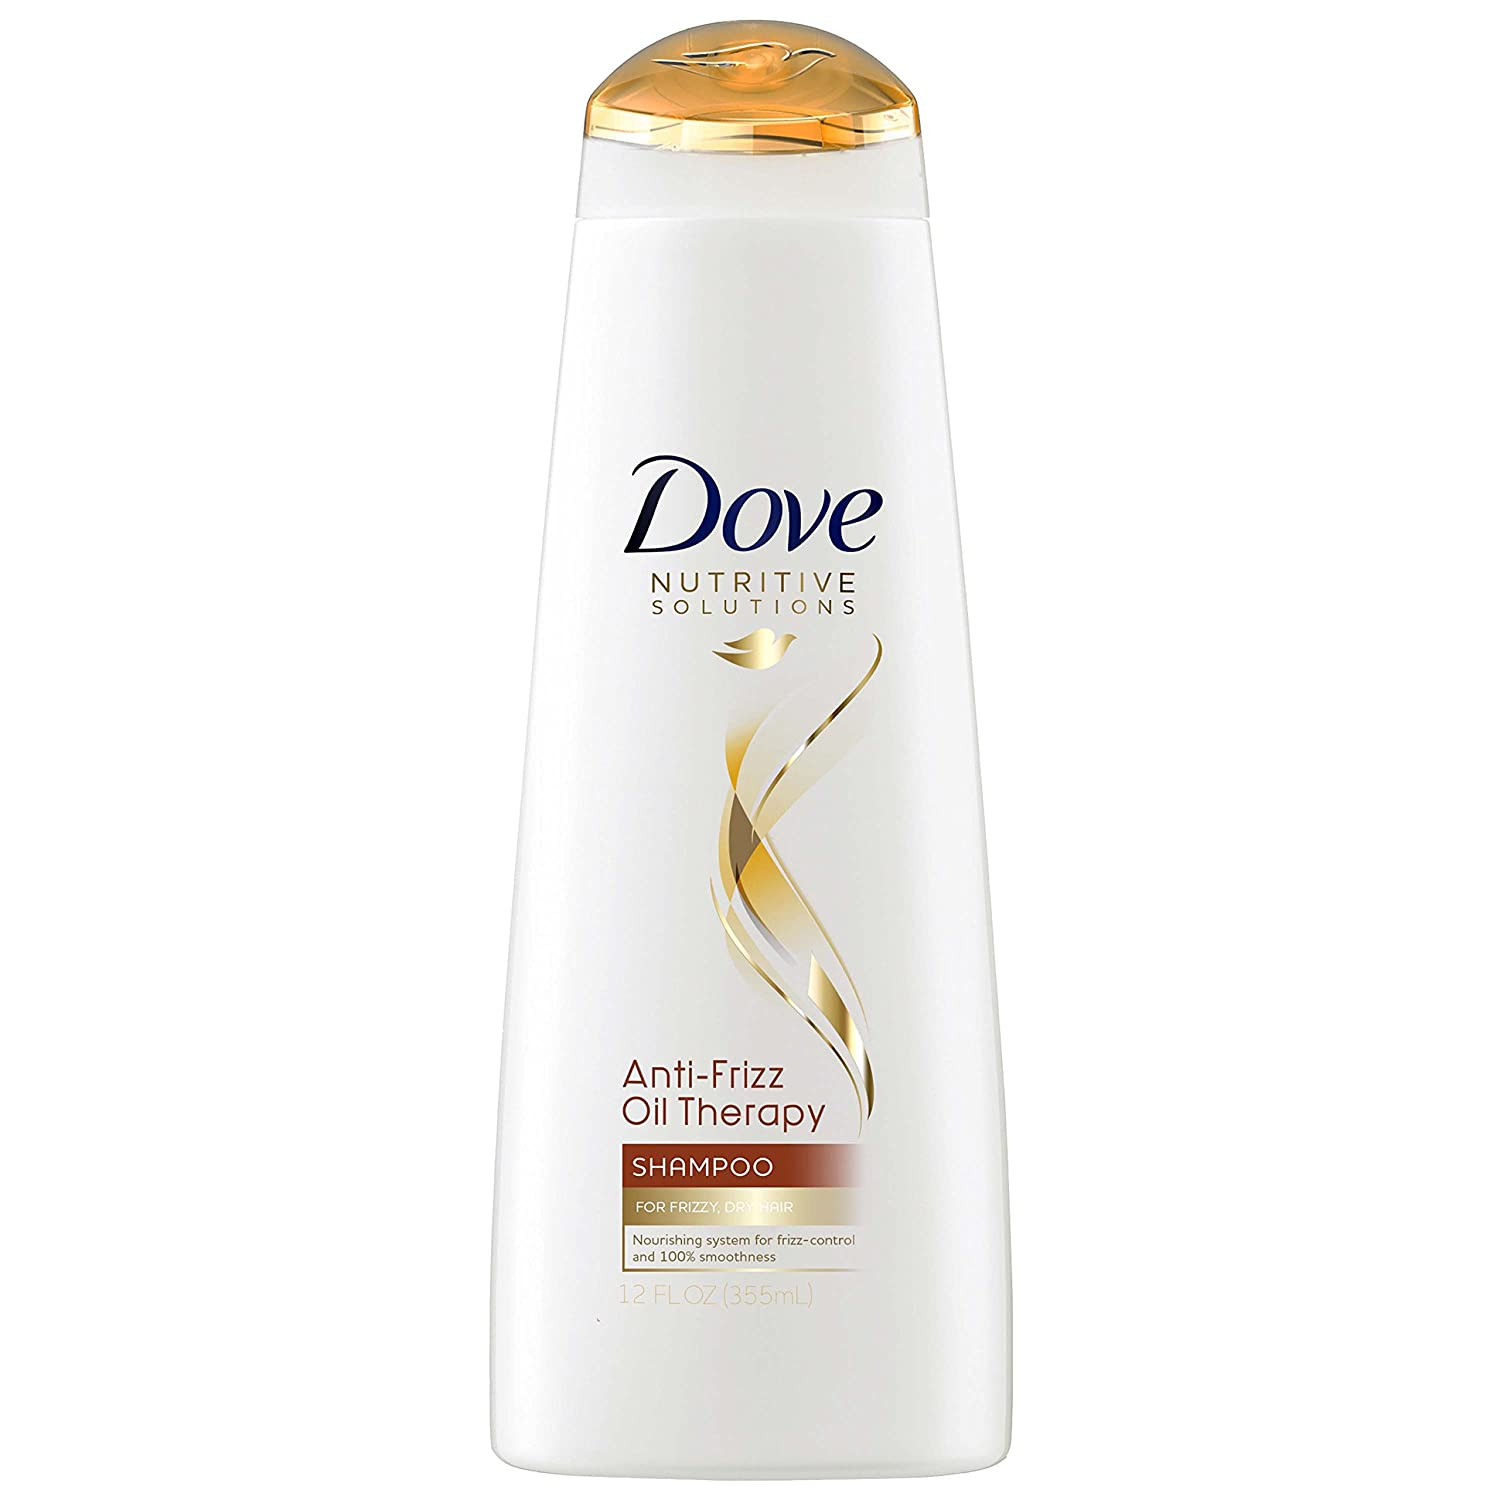 Dove Anti-Frizz Oil Therapy Shampoo With Almond Oil 12 oz(Pack of 2)